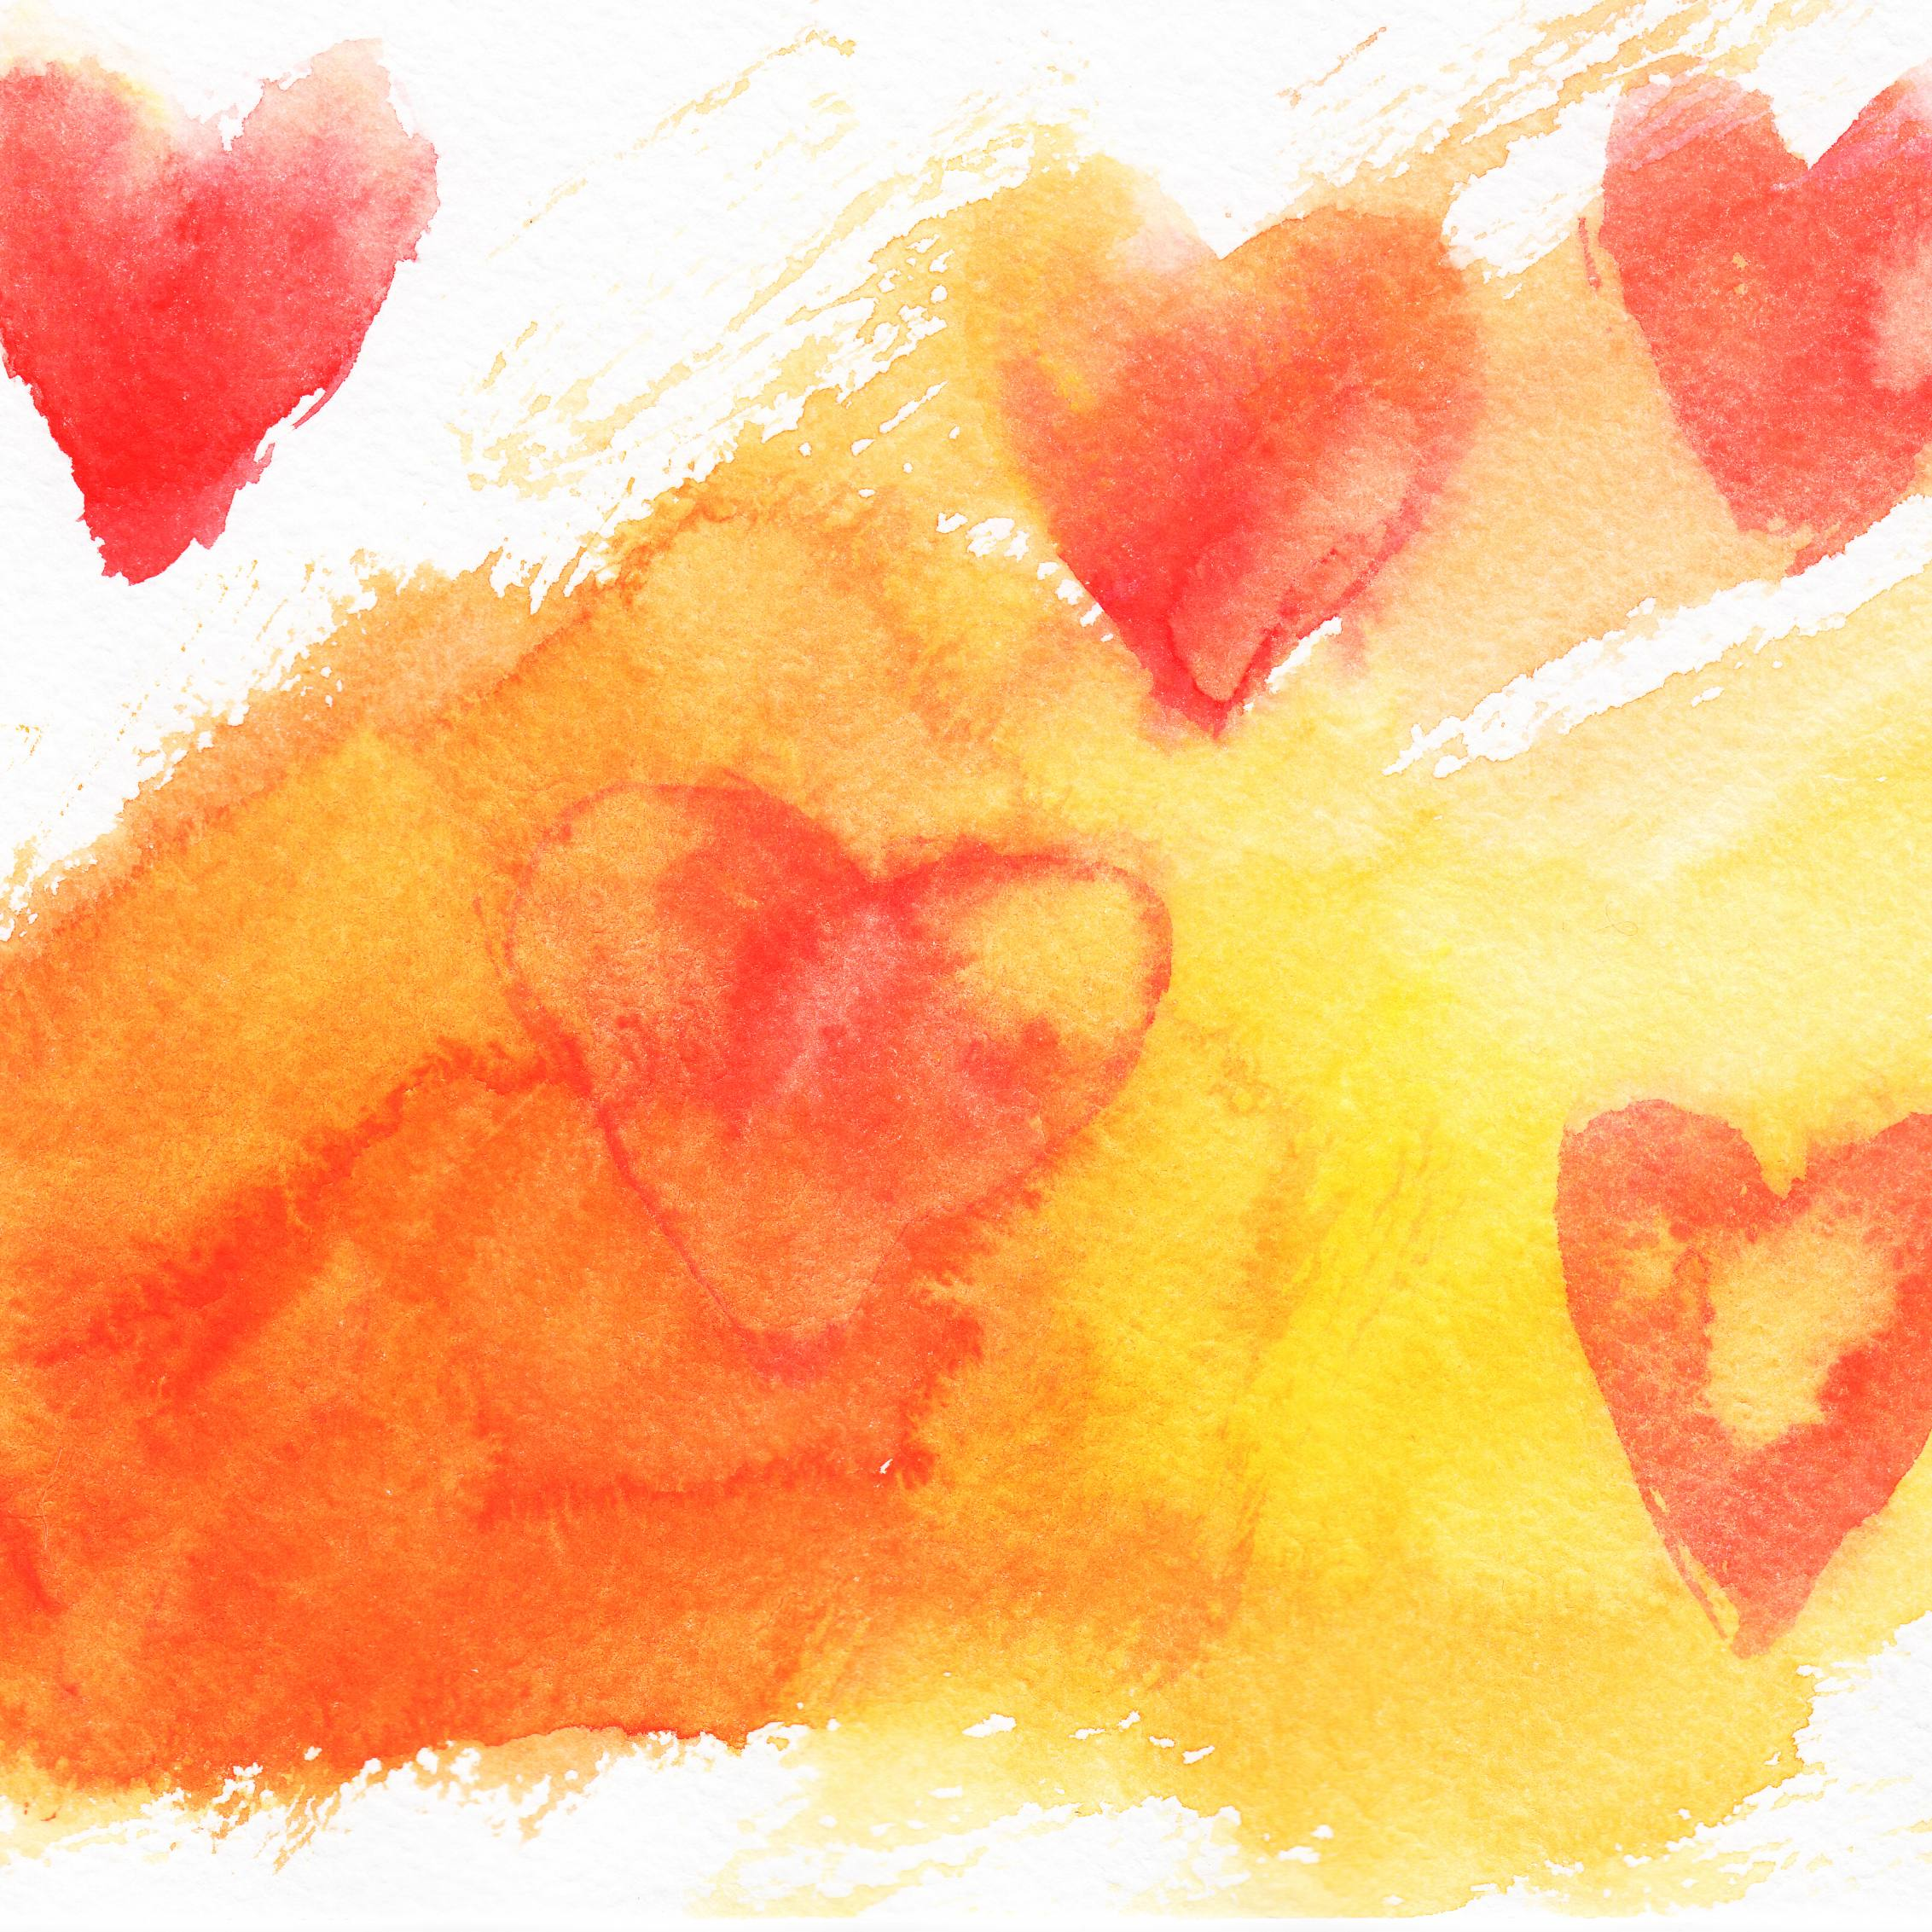 a watercolor graphic of a hearts in gold, orange and red